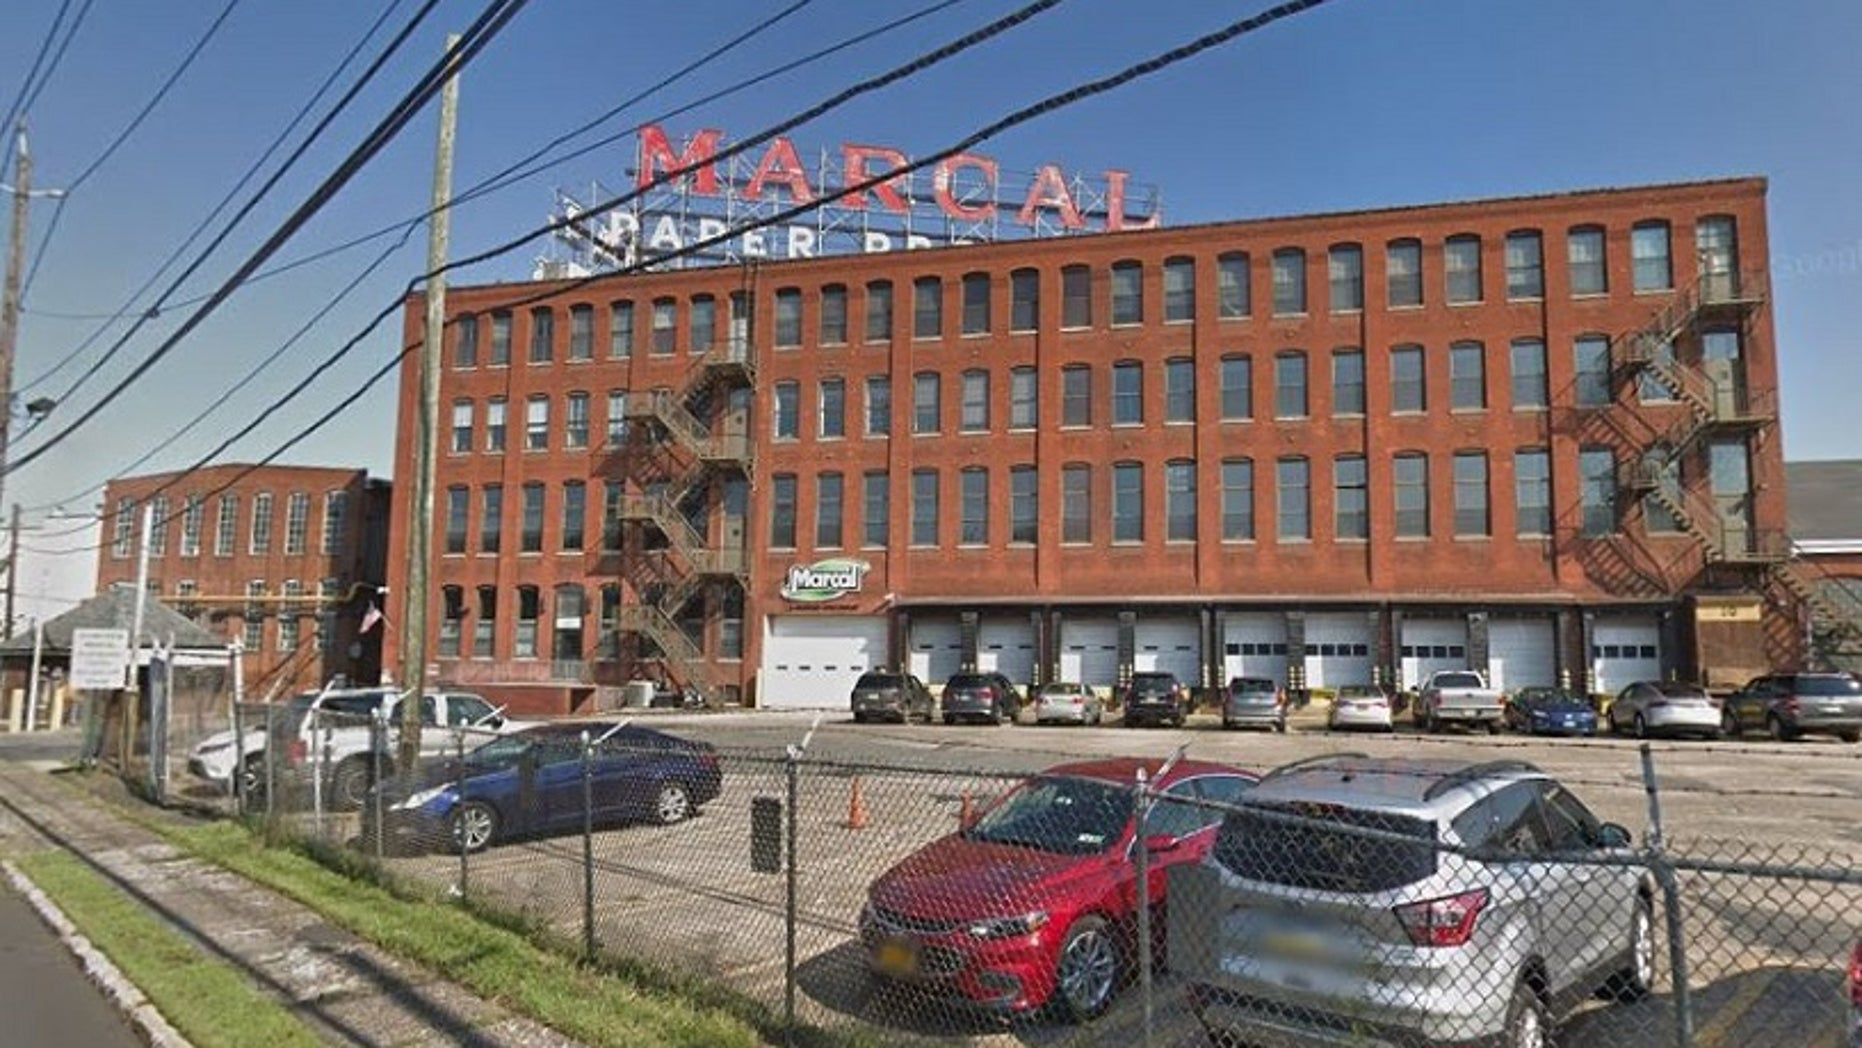 A fire destroyed an iconic red sign that sat atop the Marcal Paper Mill in New Jersey. (Google Maps)